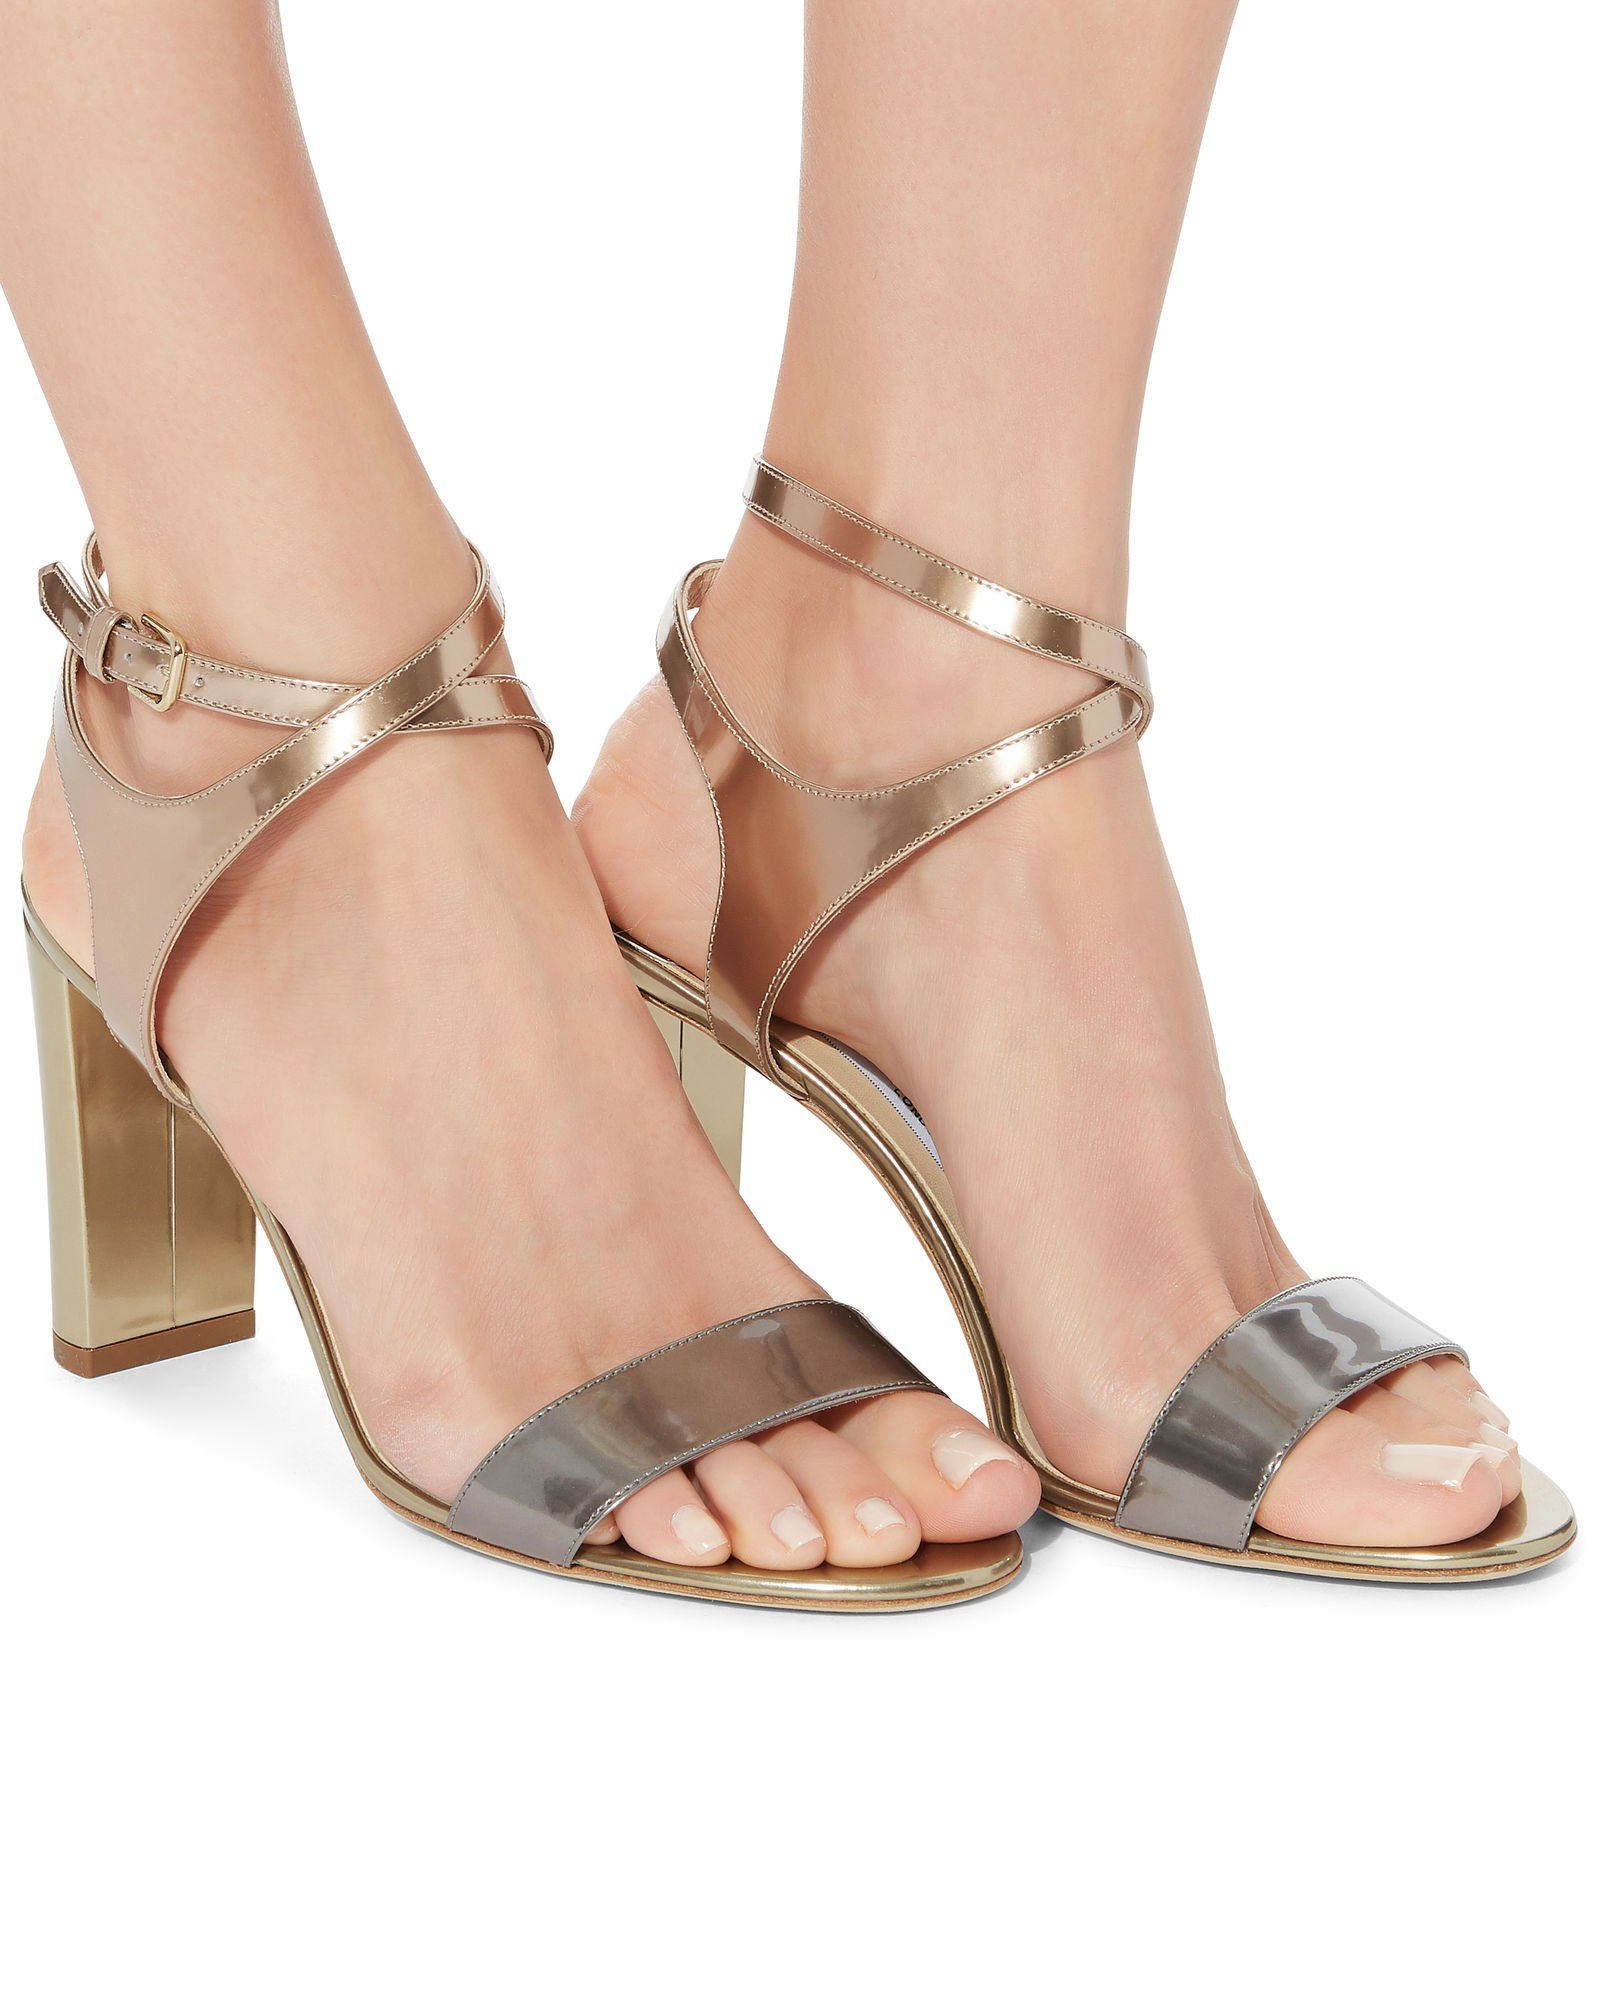 6fee47f9a884ef (41) - Marine Metallic High Sandals